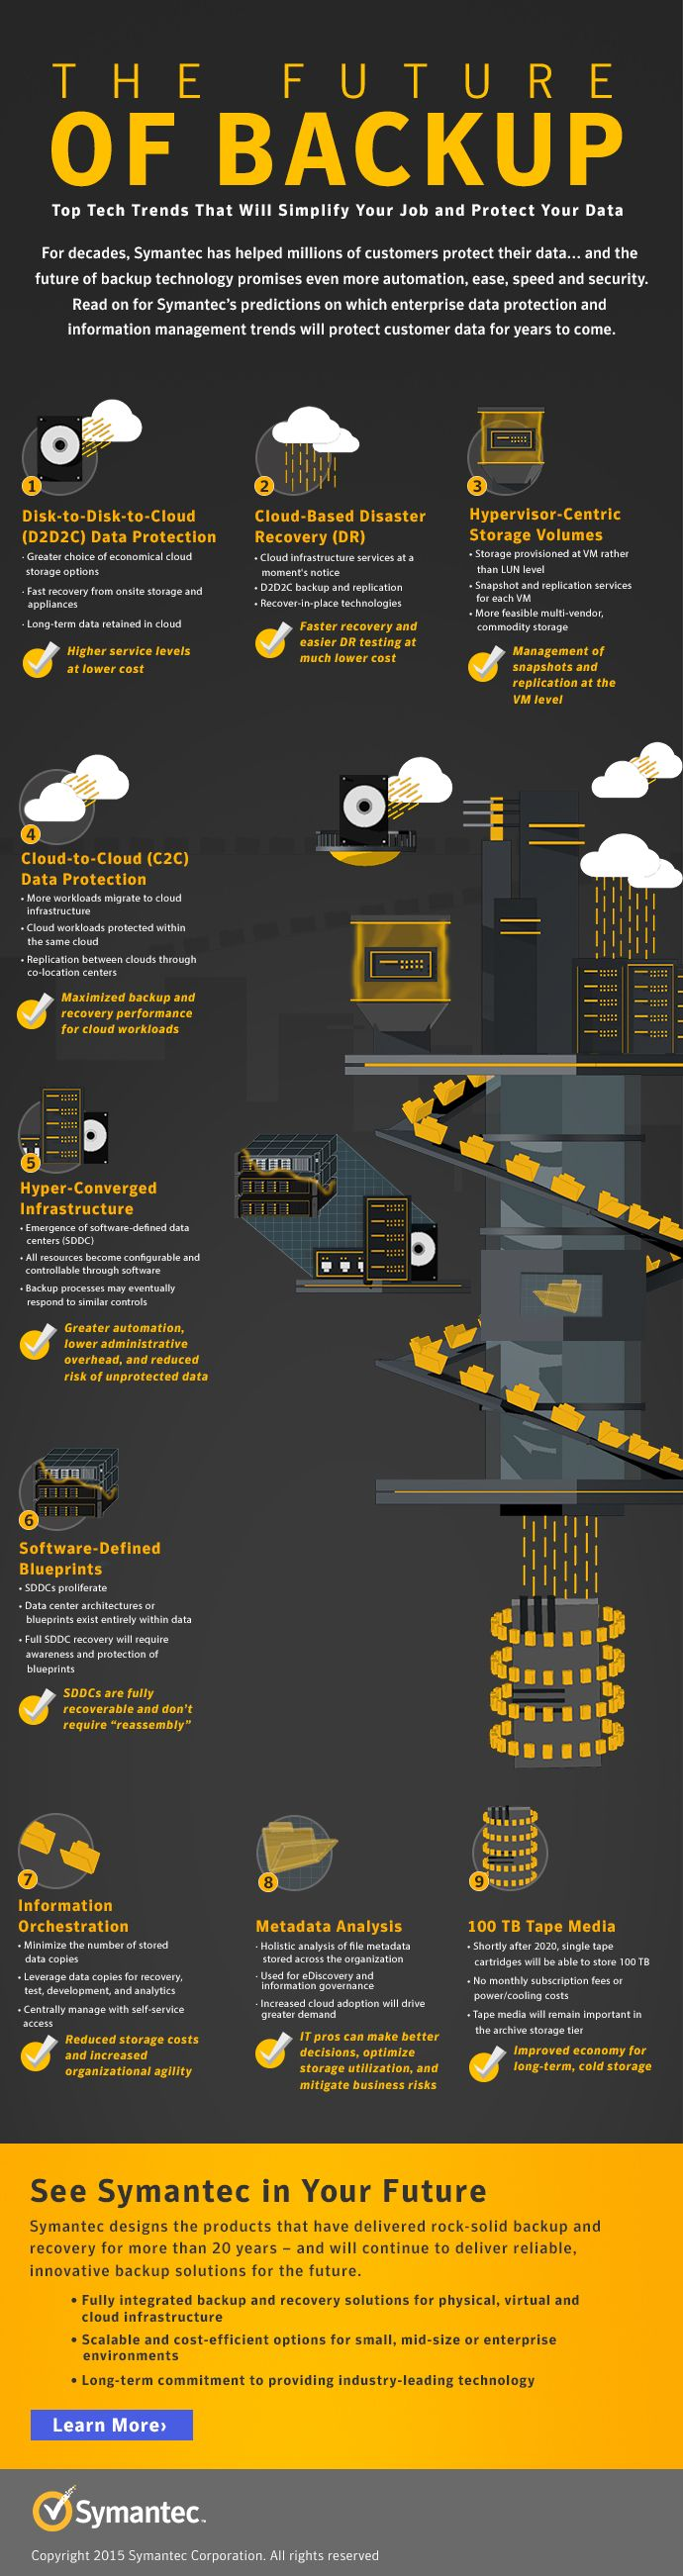 1104 Best Infographics Cb Images On Pinterest Interesting Facts Checking Power Mosfet With Simple Tester Savel Brain Dump In English The Future Of Backup Infographic